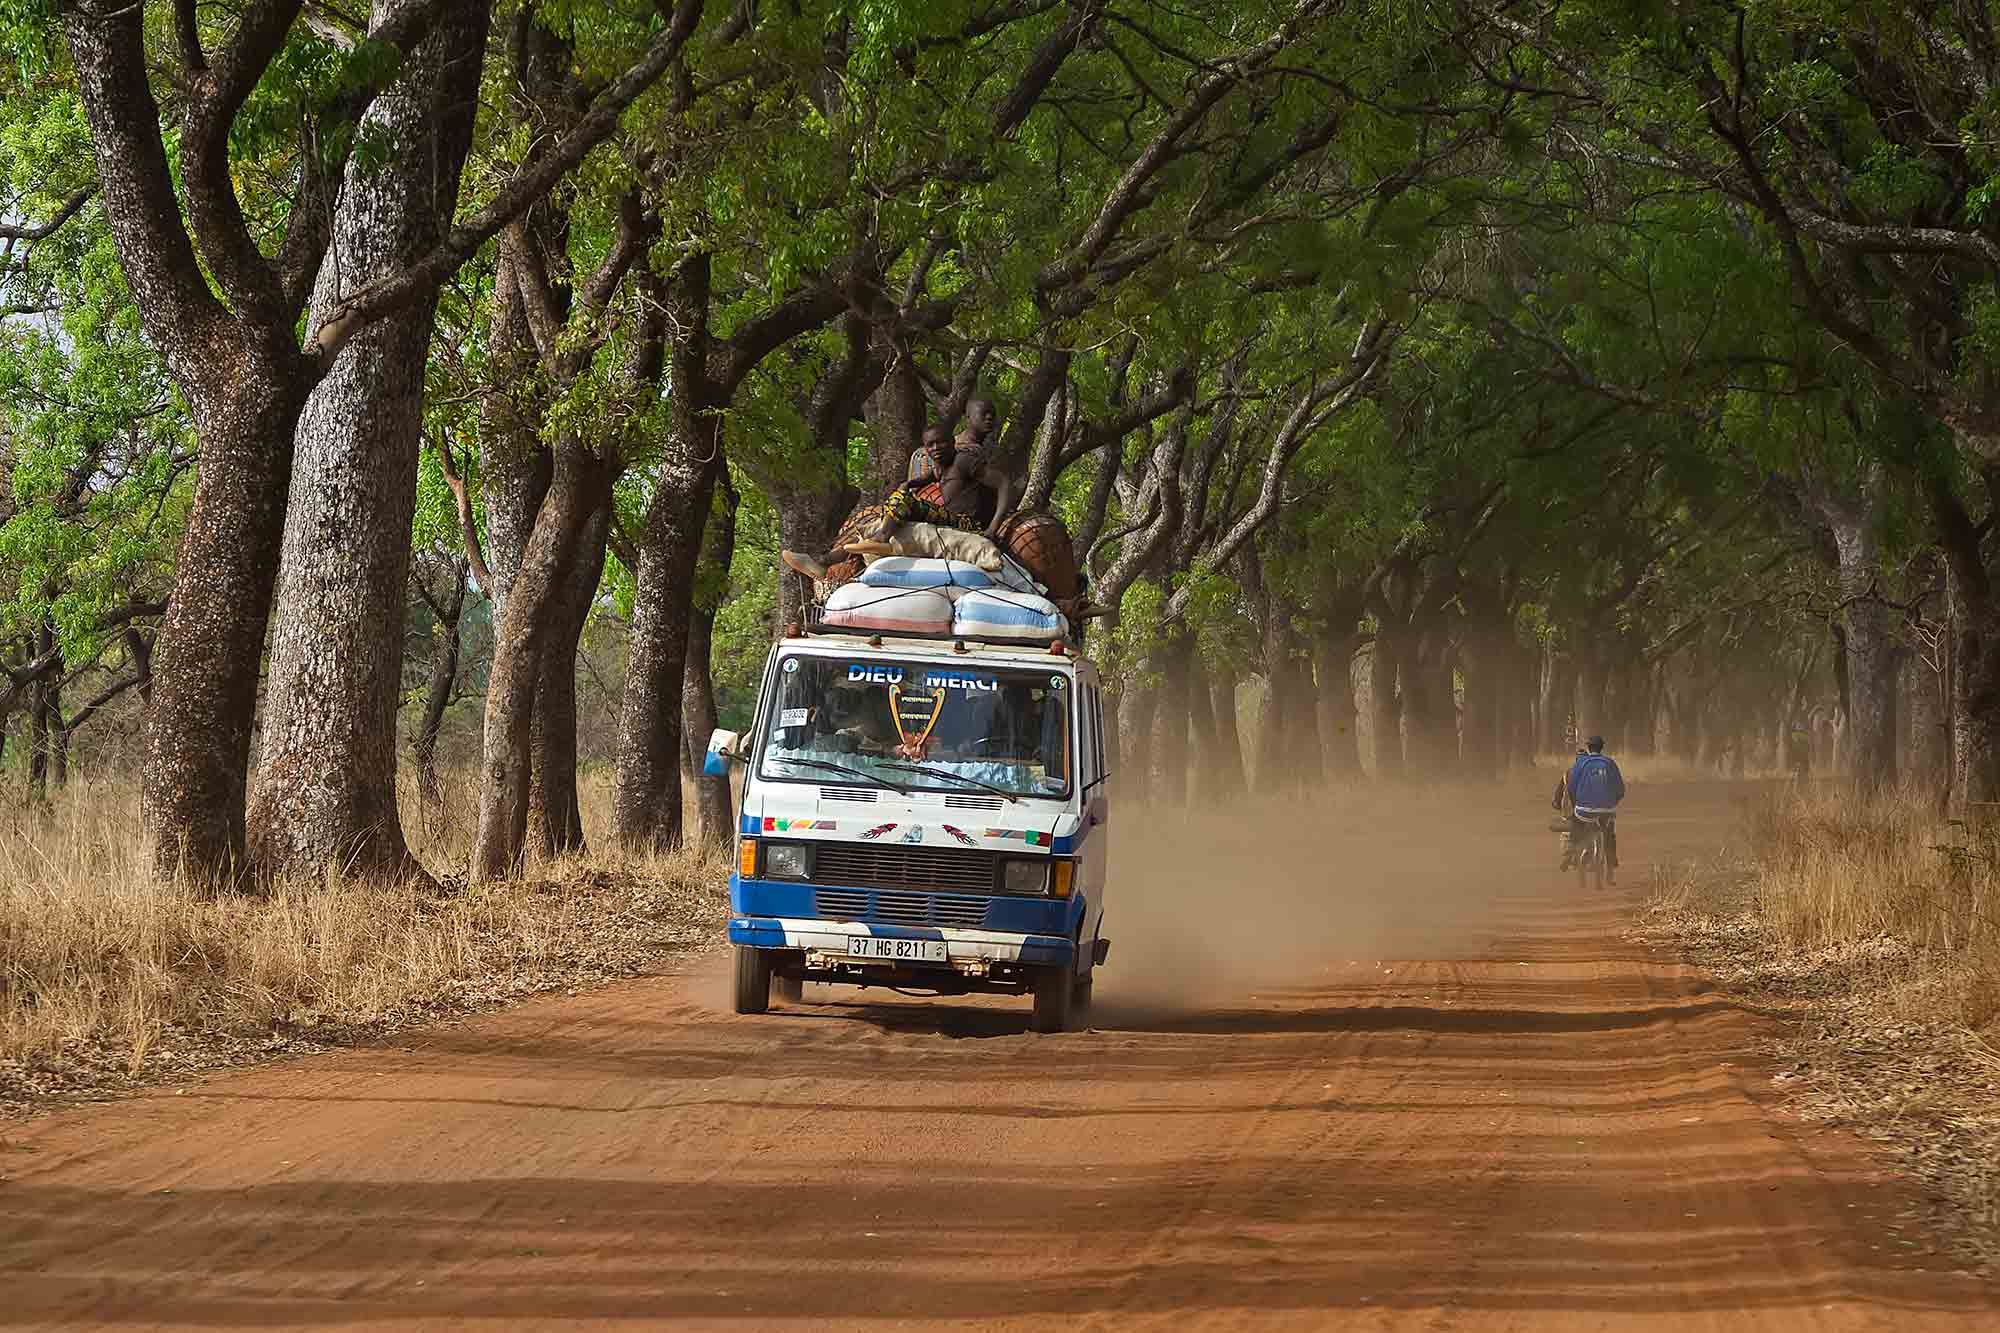 bush-taxi-driving-through-alley-of-trees-banfora-burkina-faso-africa